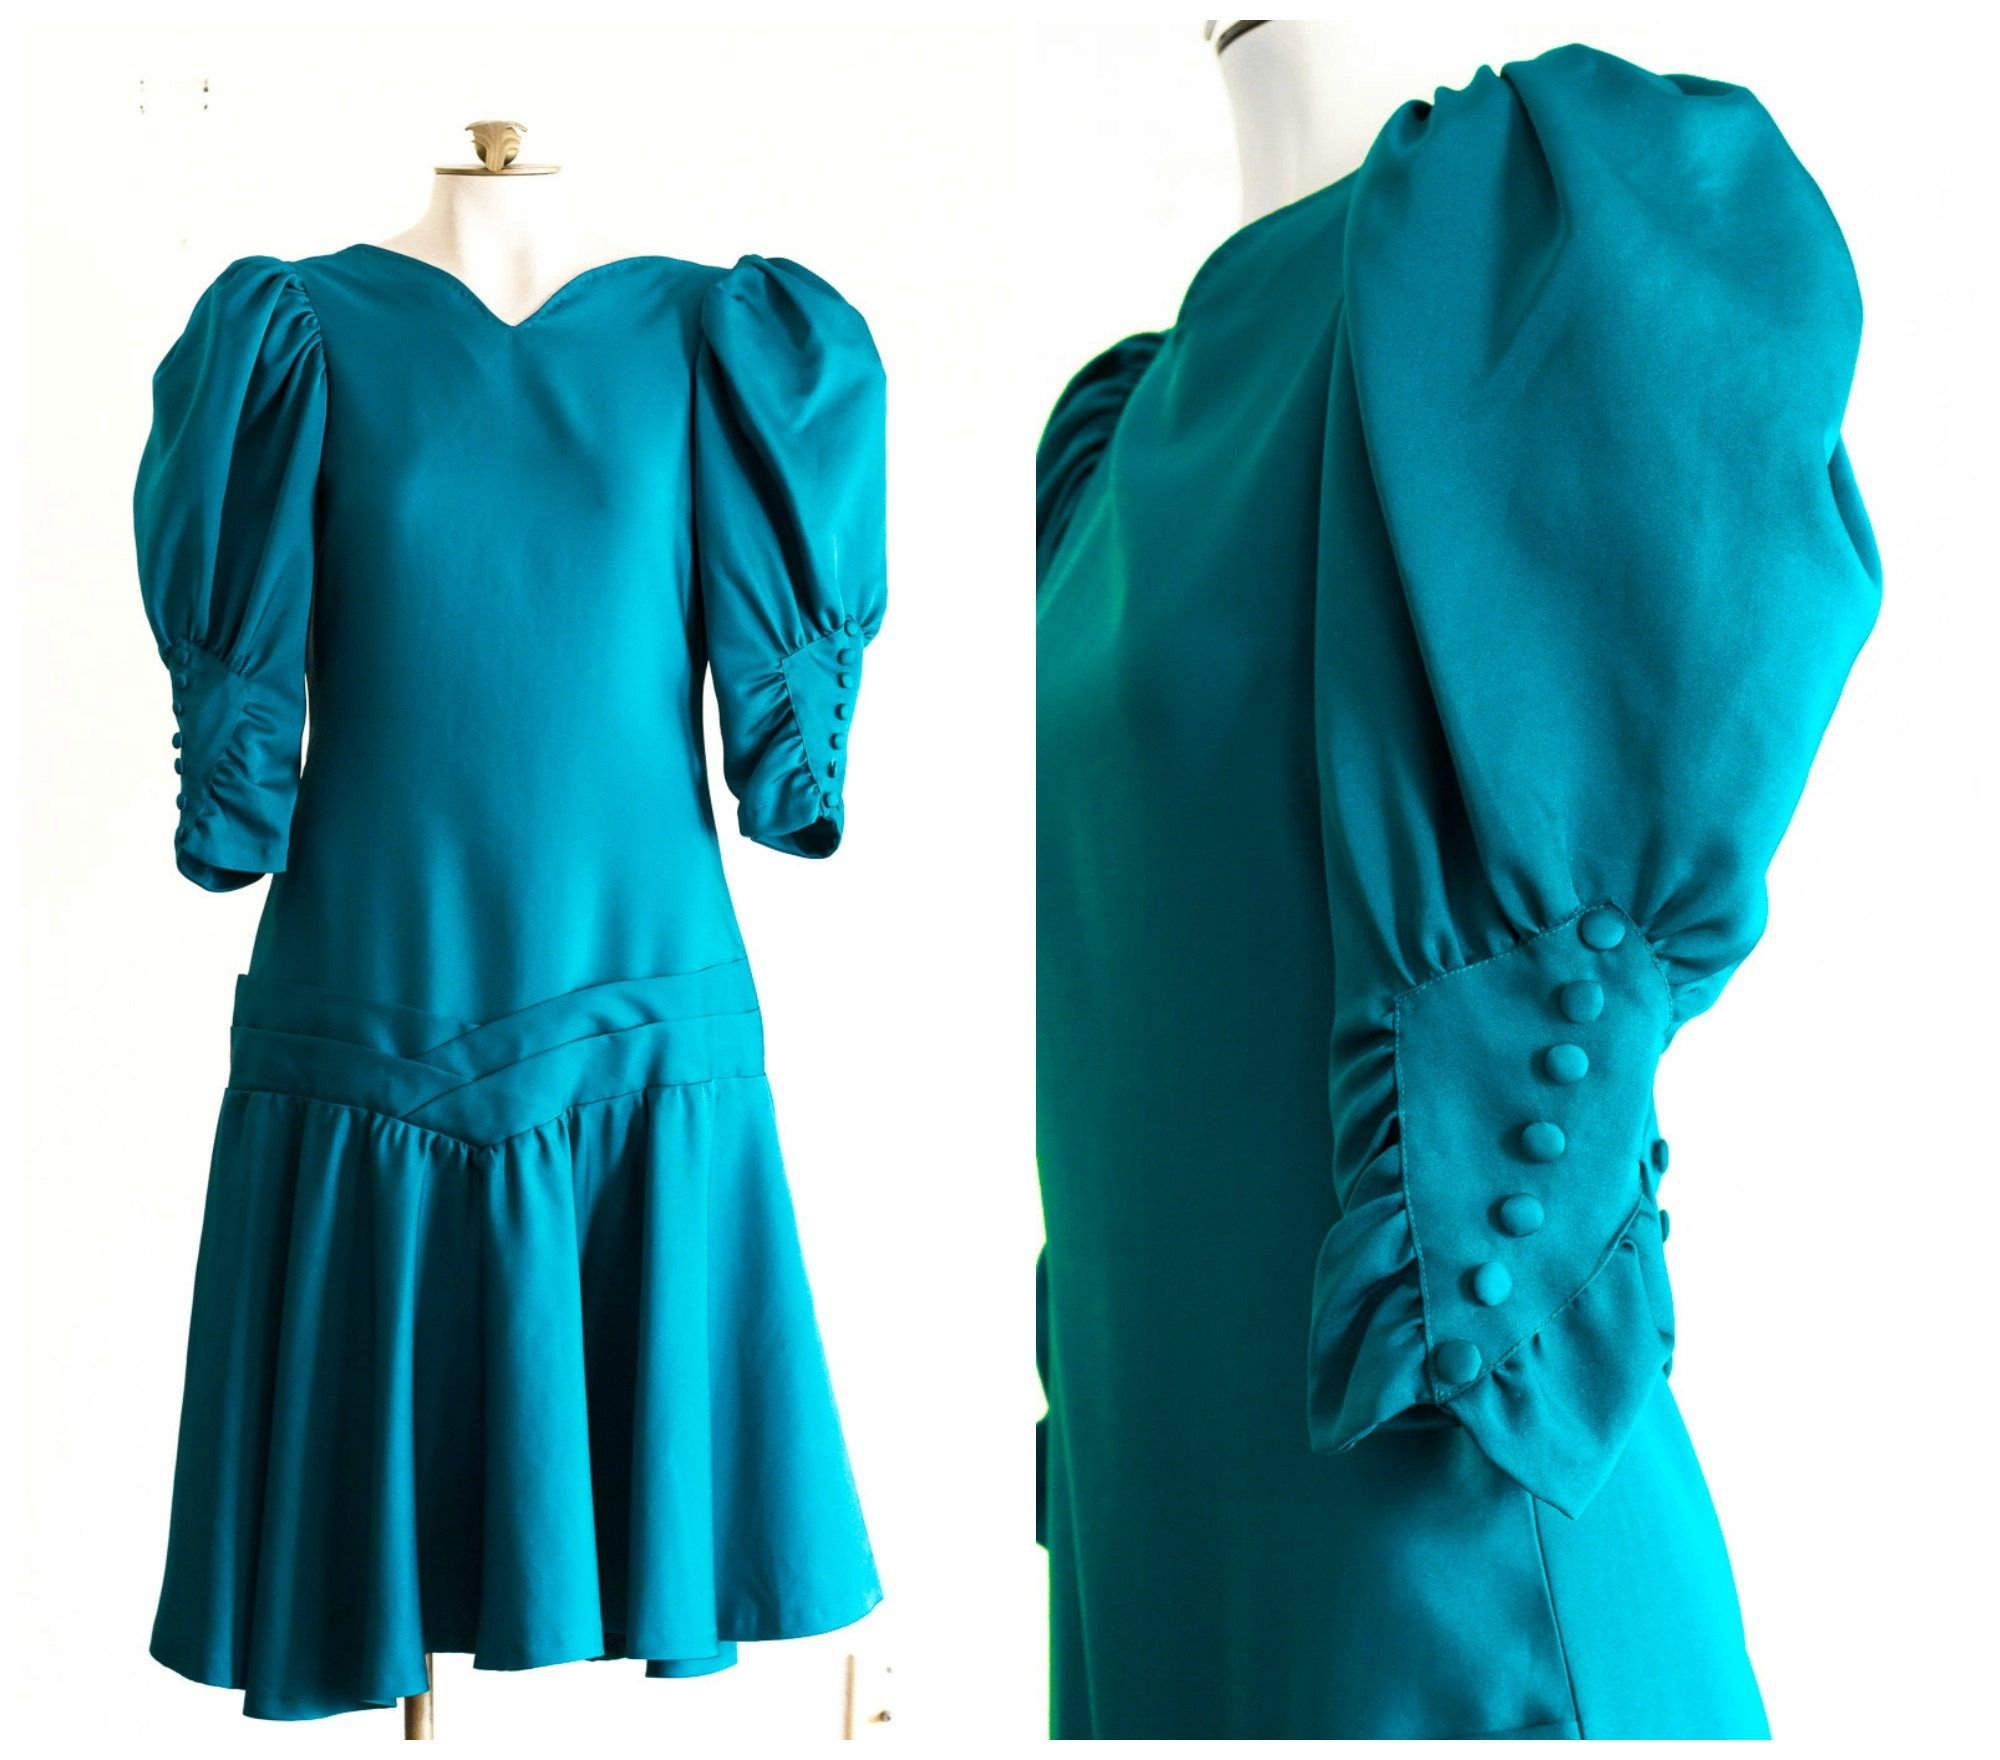 1980s teal prom dress with dropped waist and bow detail   Prom ...